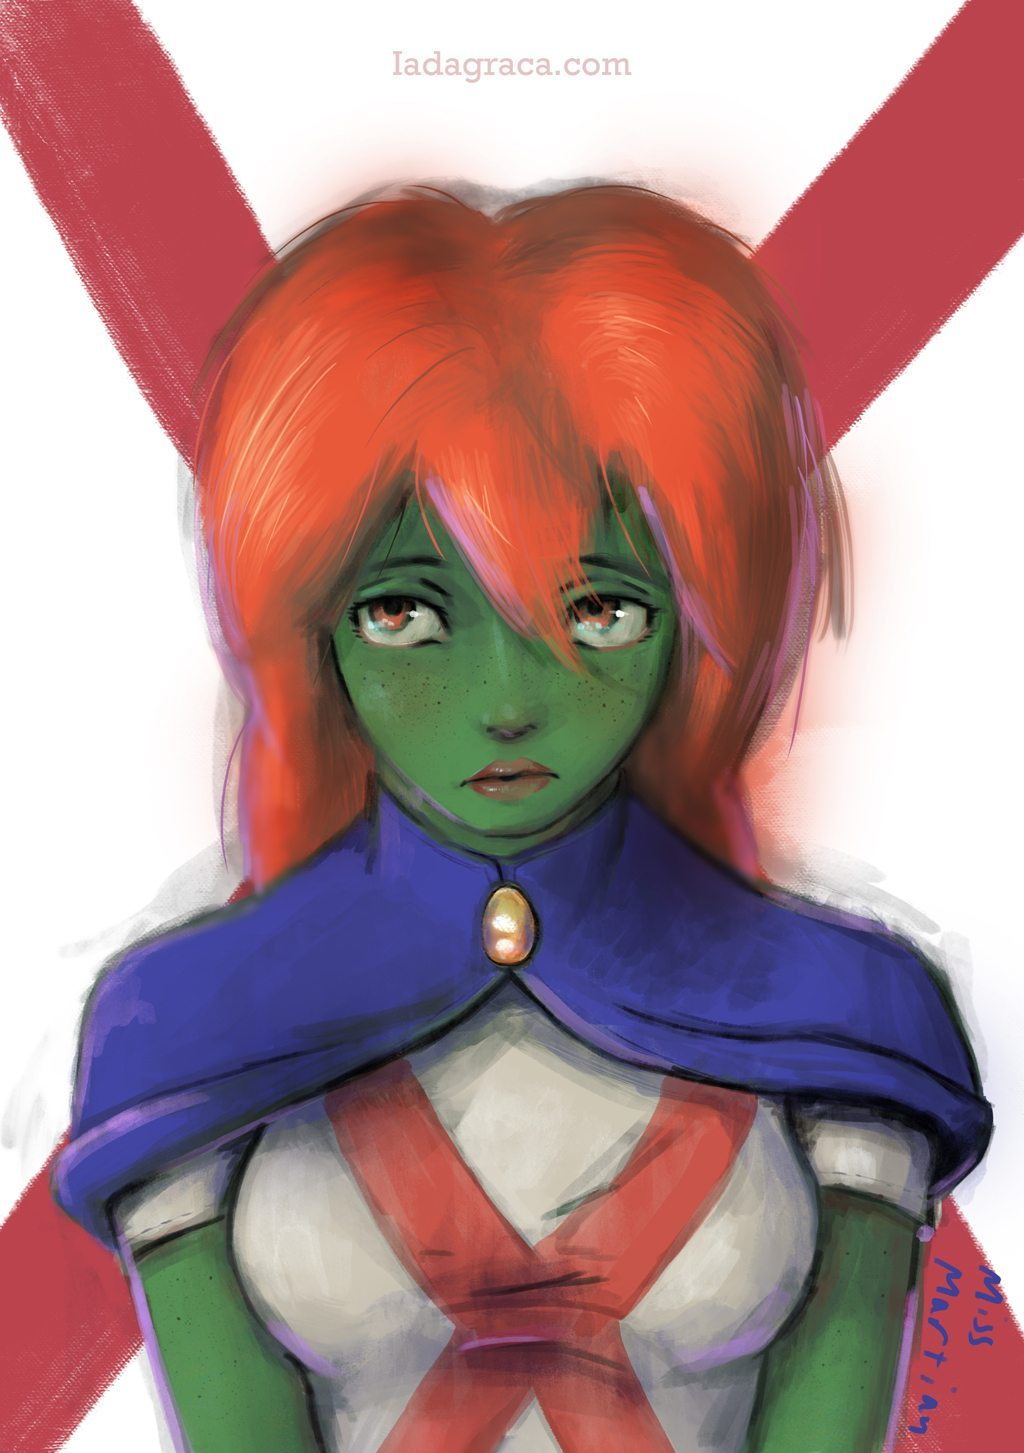 Portrait of Miss Martian by iadagraca